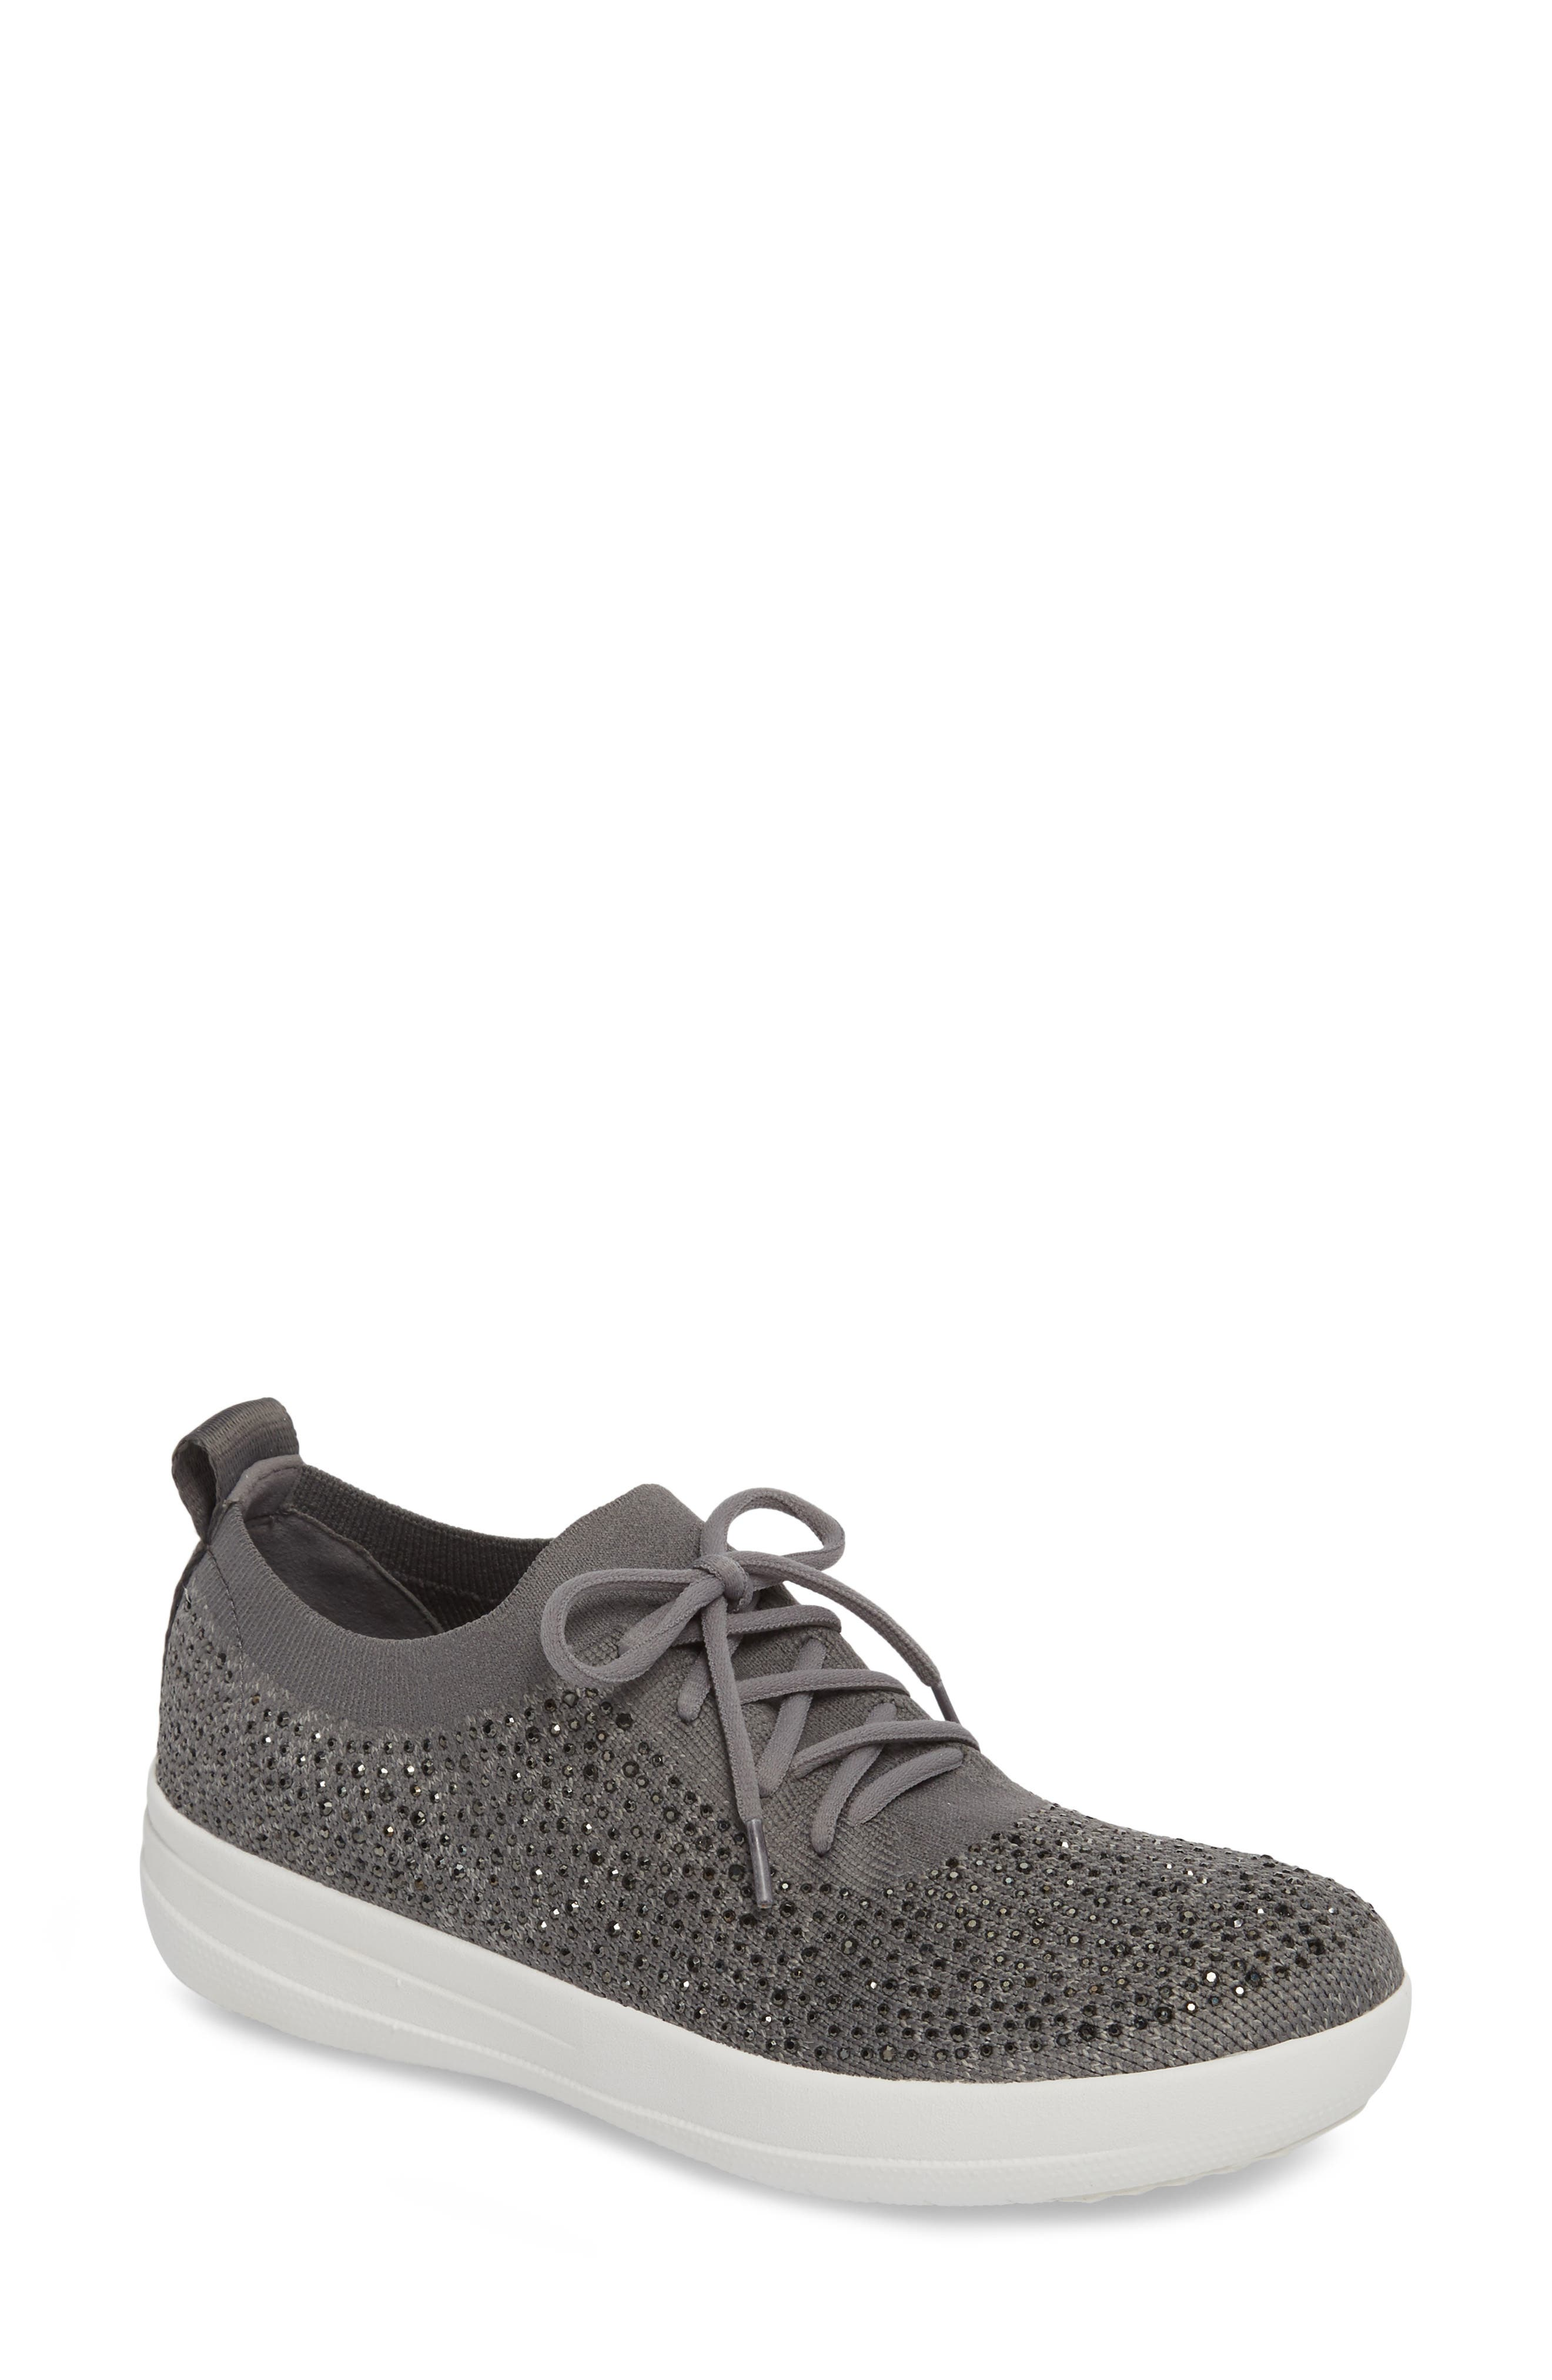 FITFLOP, Uberknit<sup>™</sup> F-Sporty Sneaker, Main thumbnail 1, color, CHARCOAL/ DUSTY GREY